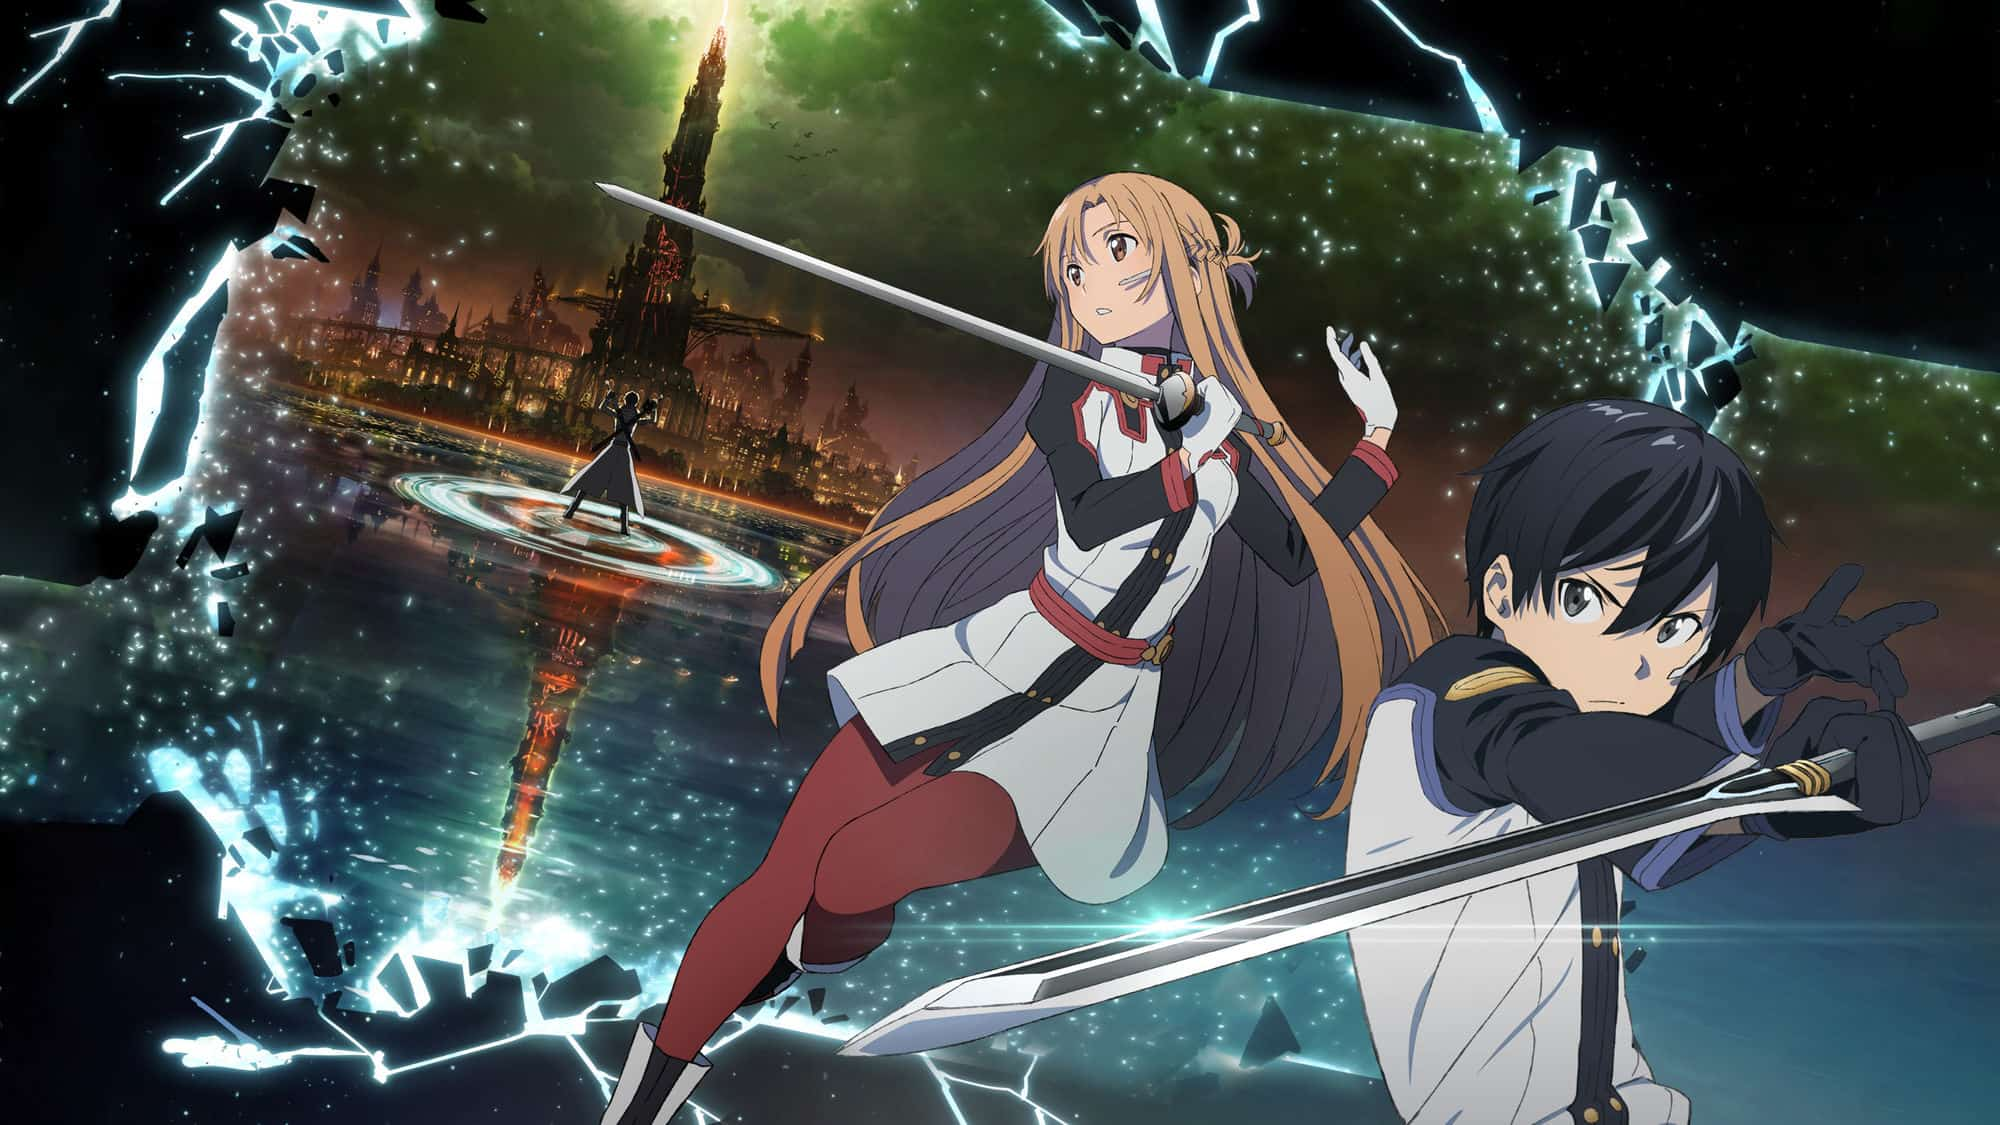 Sao Rath resurrection of the black swordsman – sword art online: ordinal